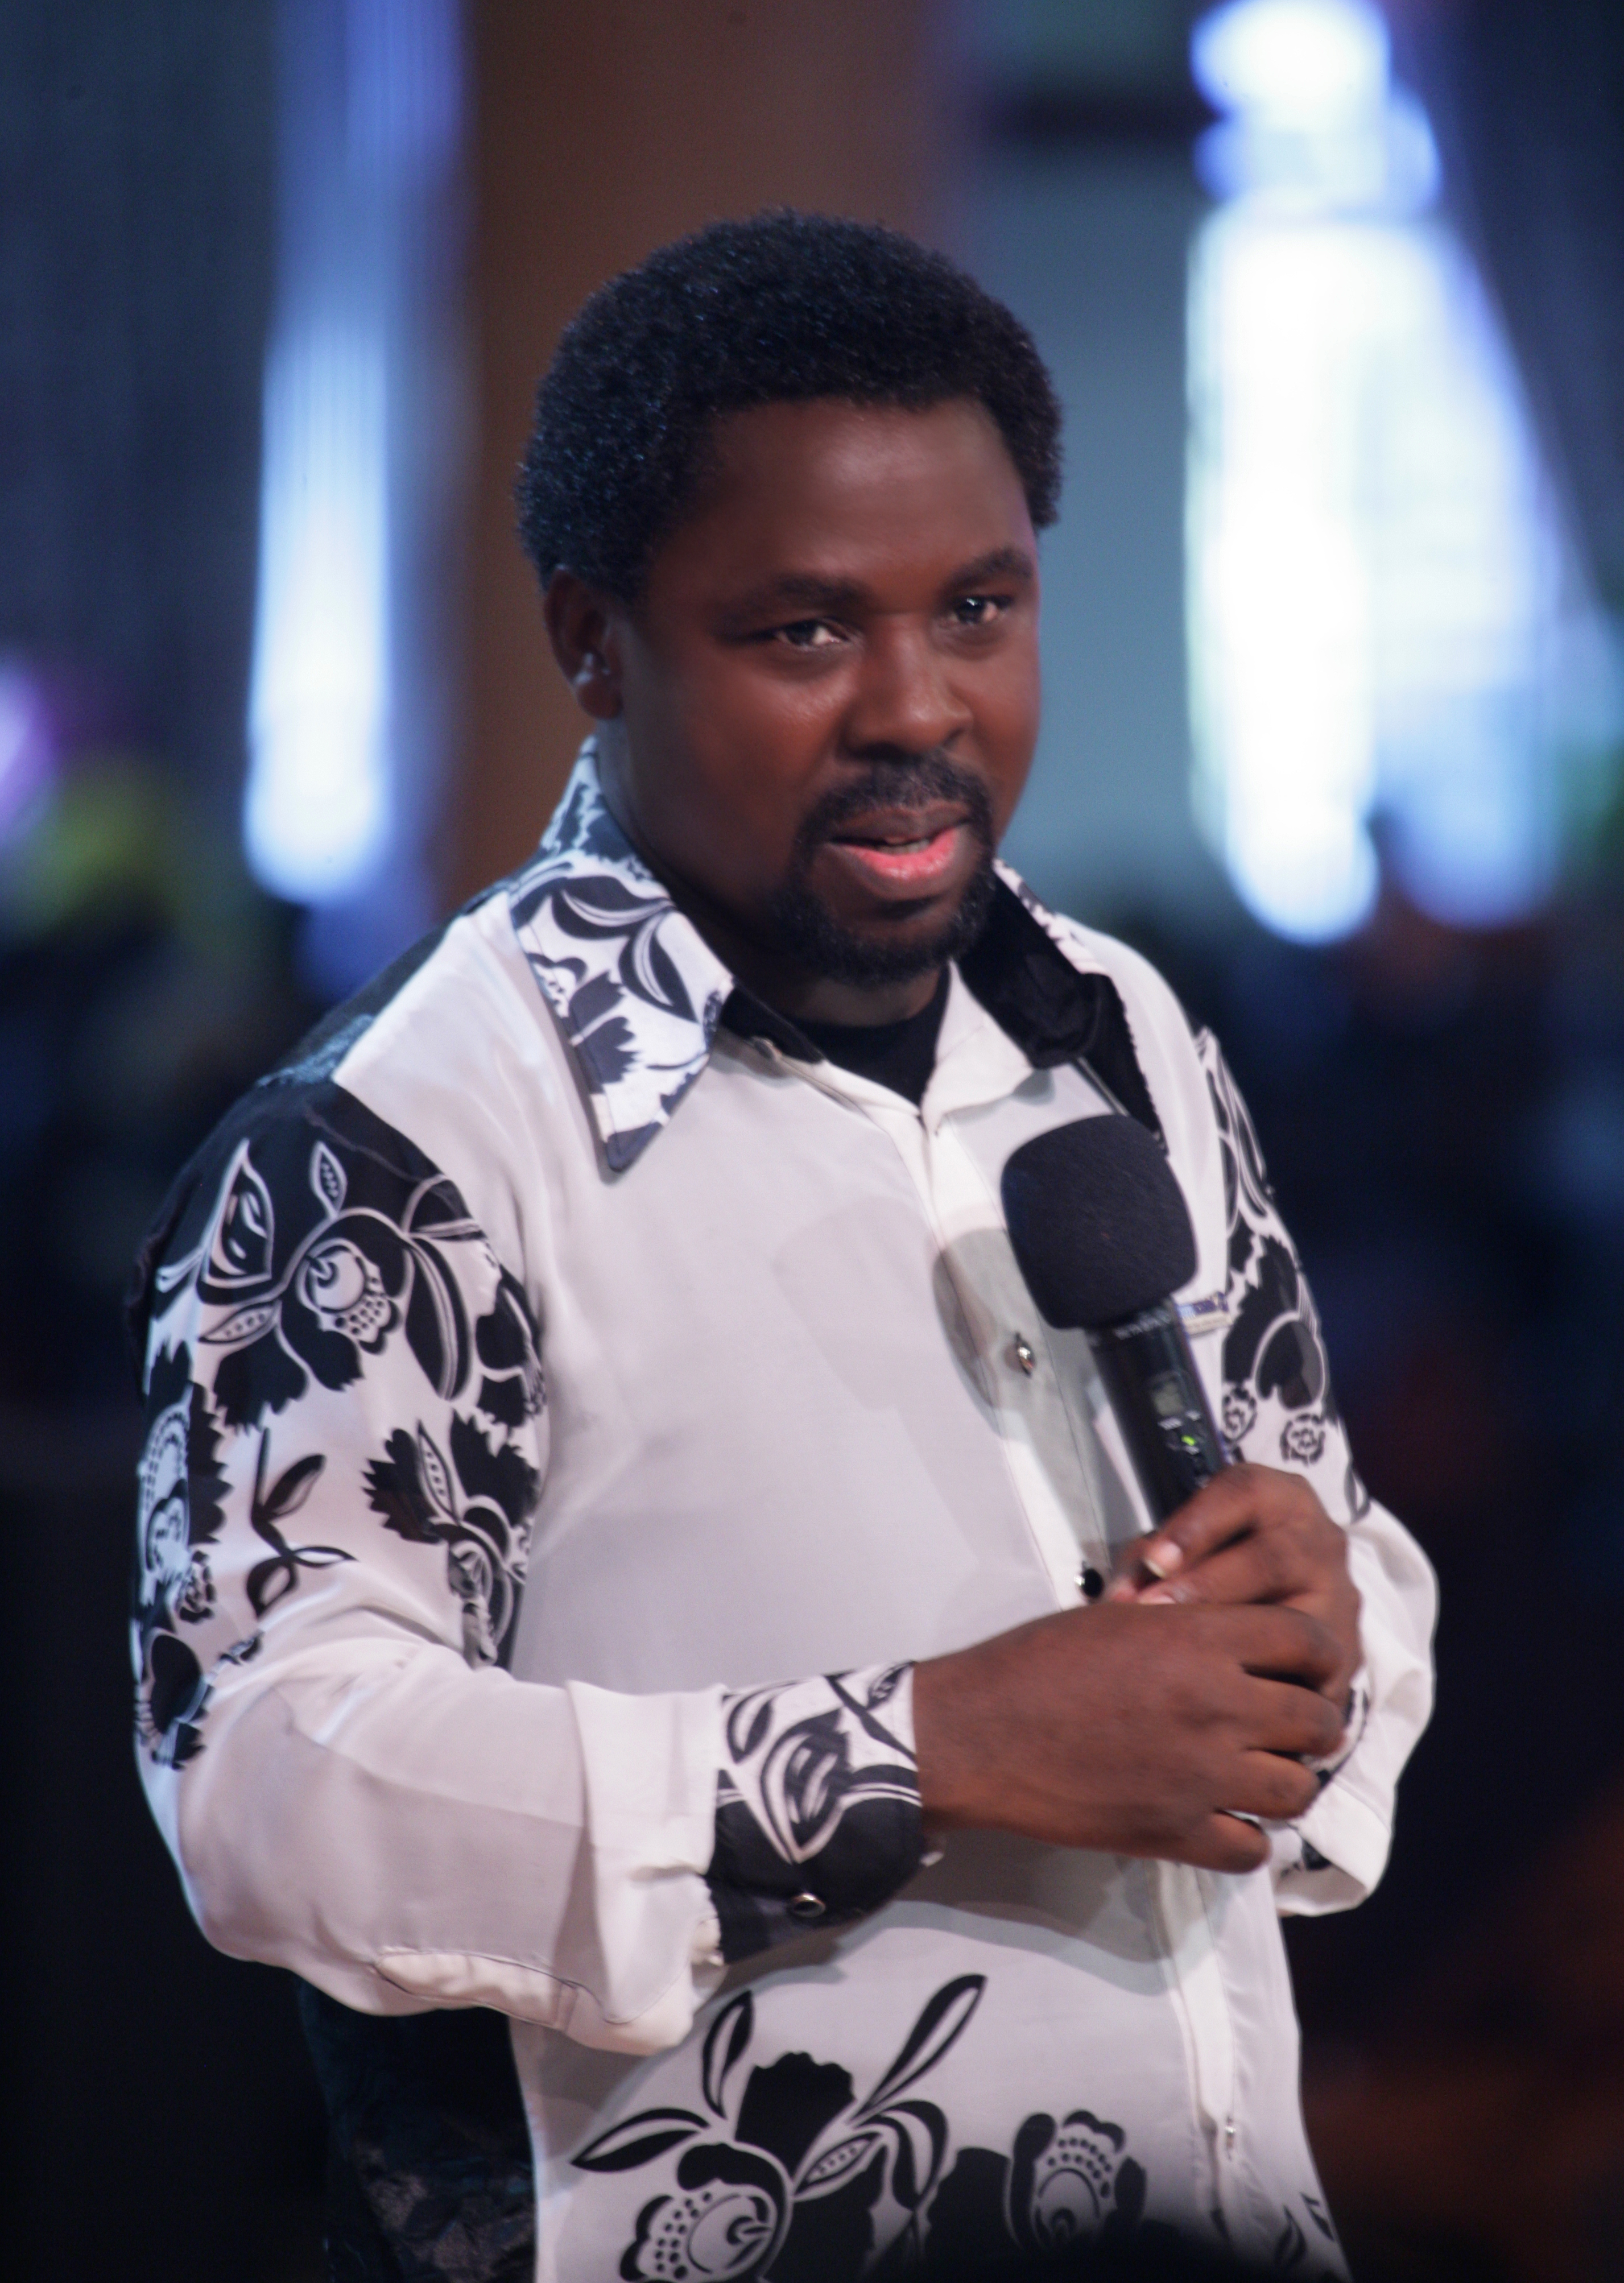 The Mystery Woman Who Charmed TB Joshua - The Synagogue, Church Of